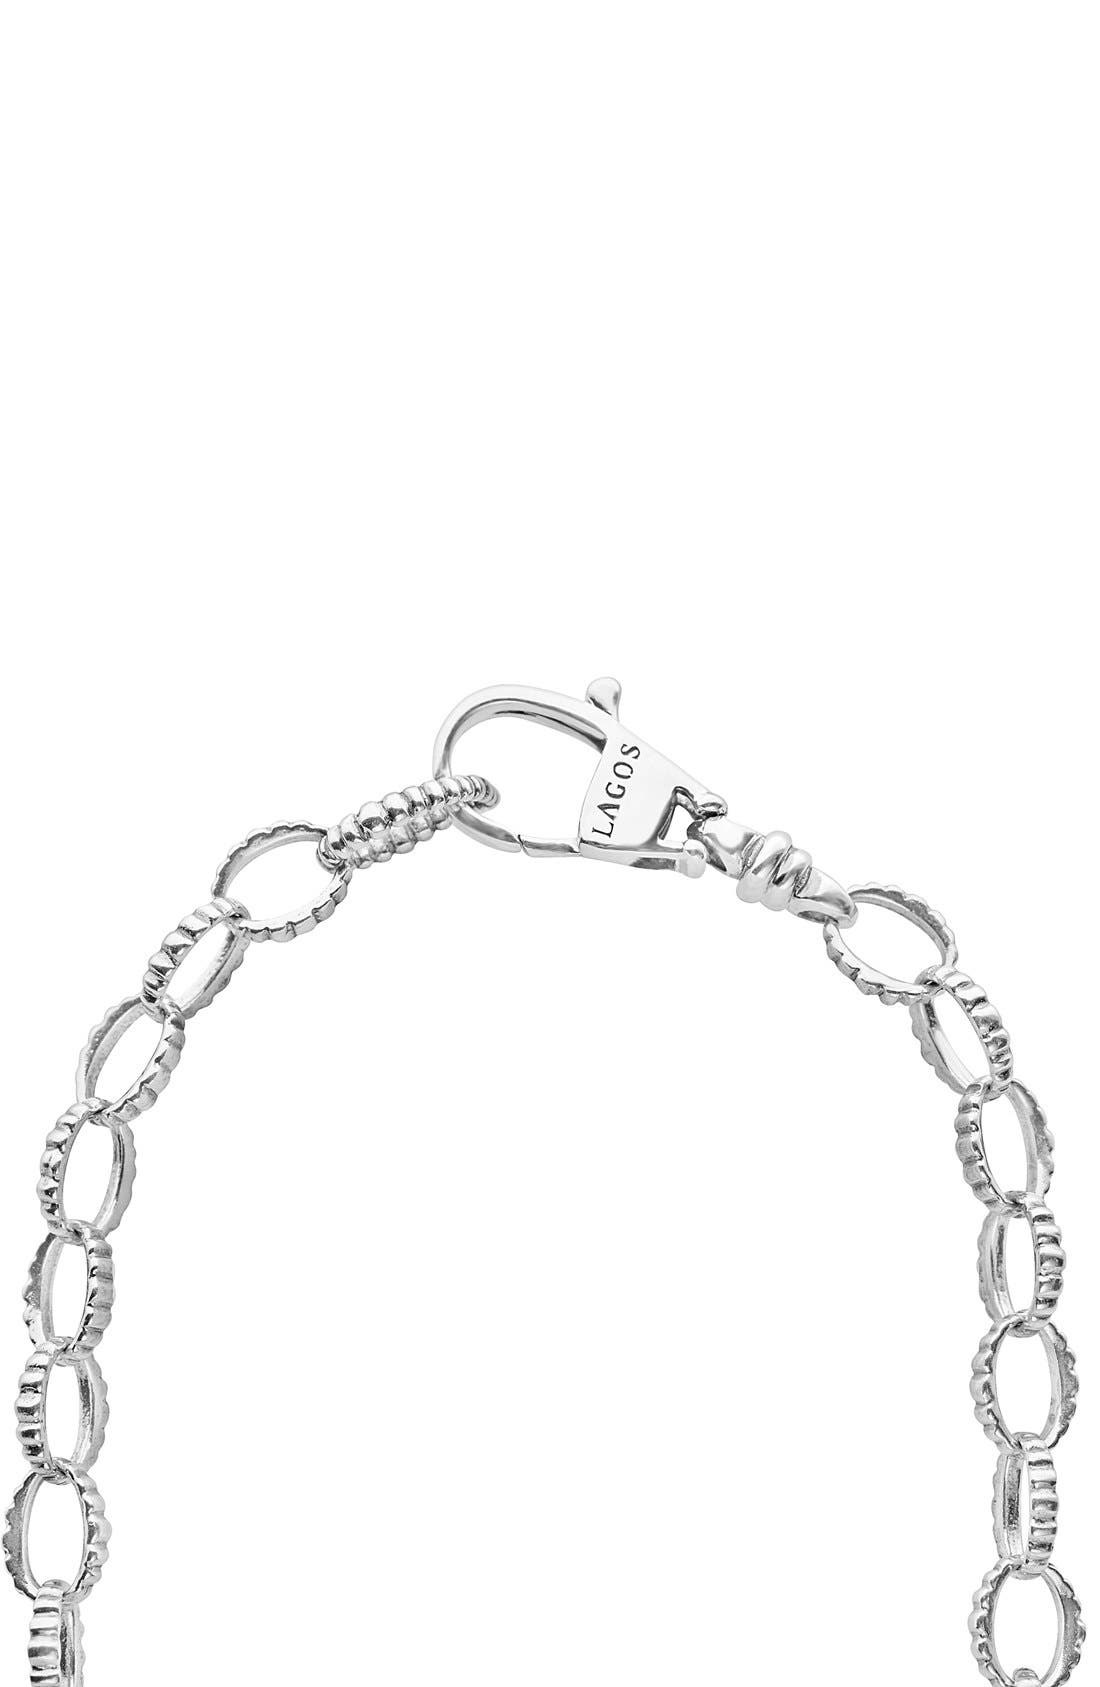 Long Link Necklace,                             Alternate thumbnail 4, color,                             Sterling Silver